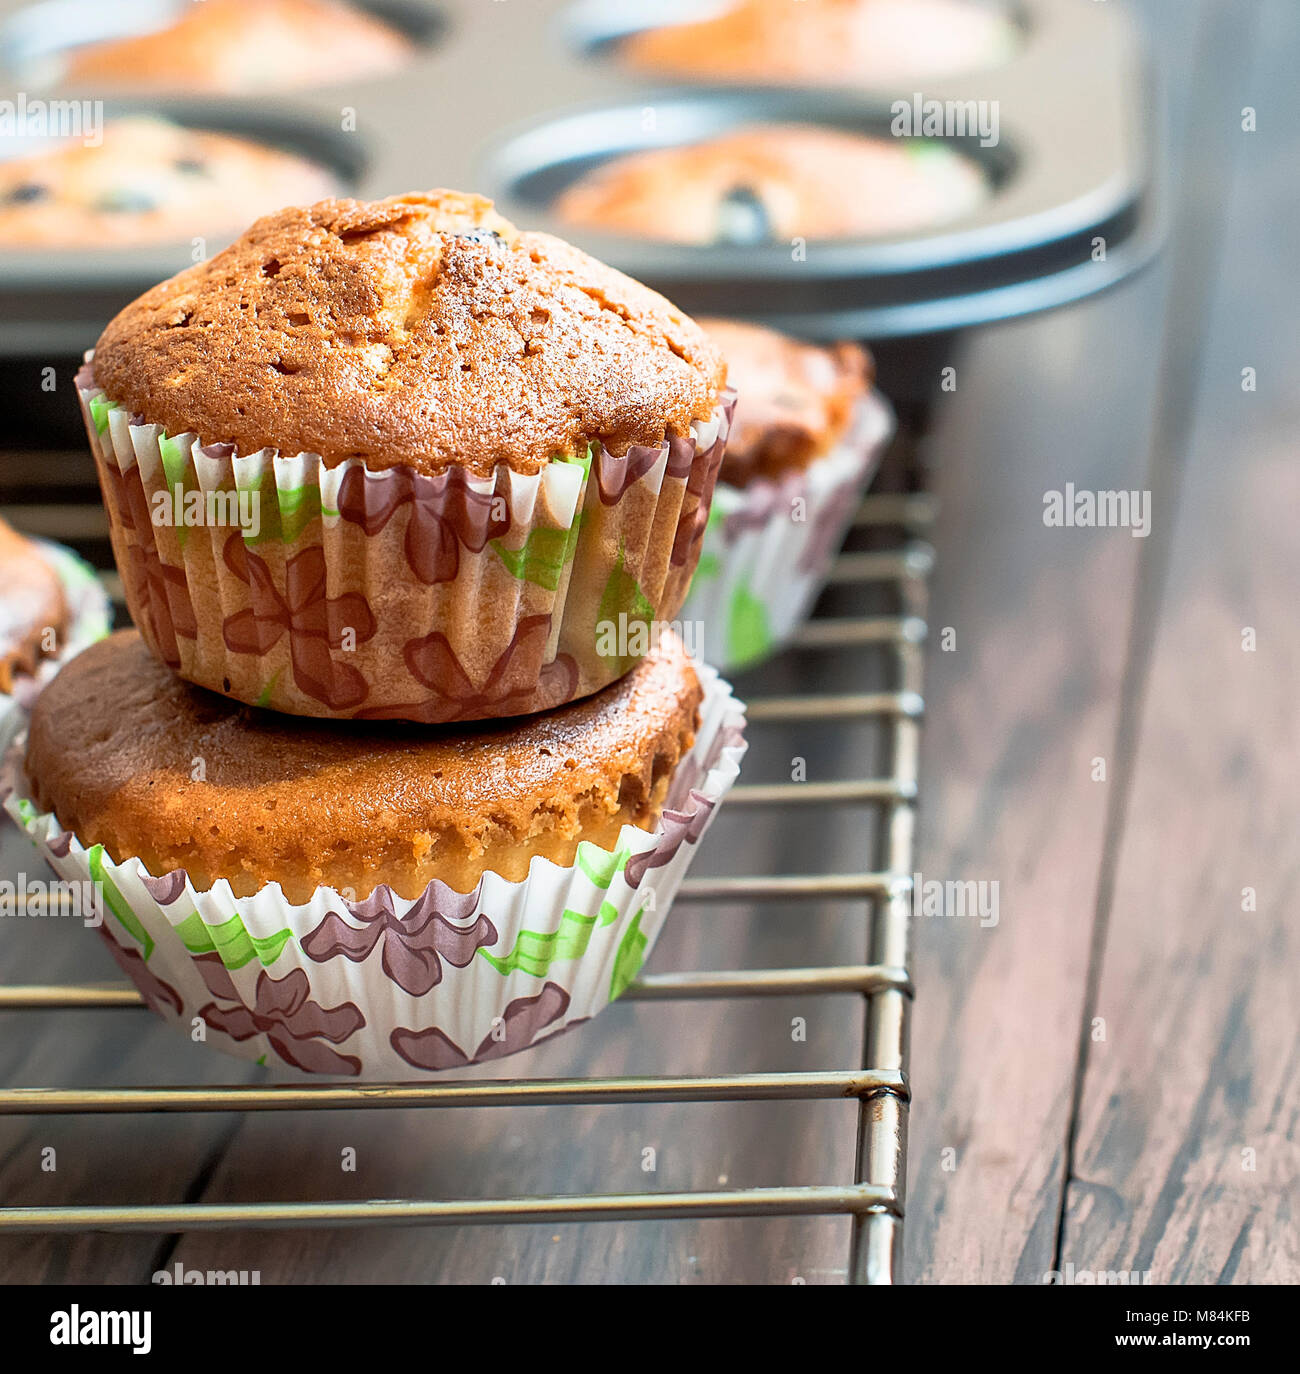 chocolate and vanilla  homemade muffins on a dark wooden background  bakery concept. - Stock Image